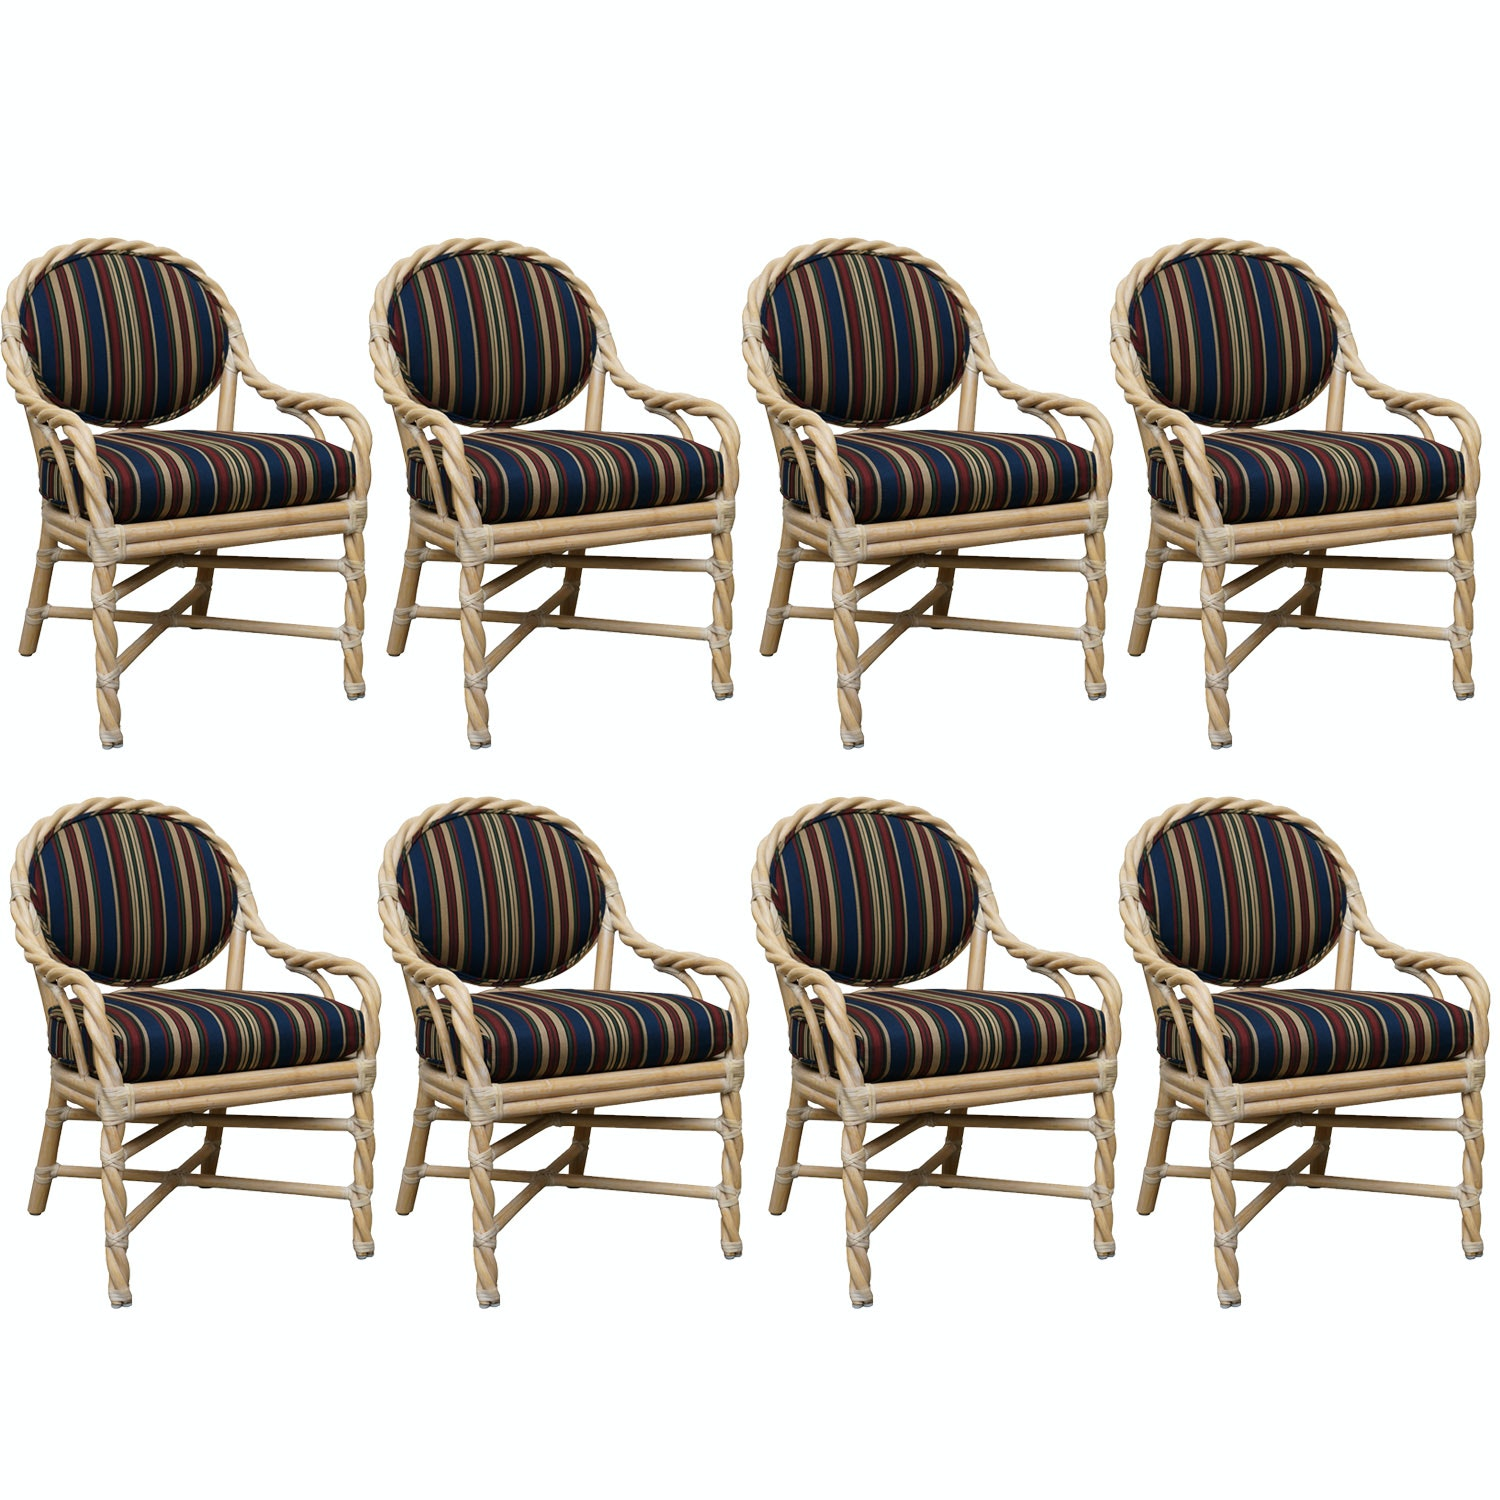 Set of Rattan Style Upholstered Chairs